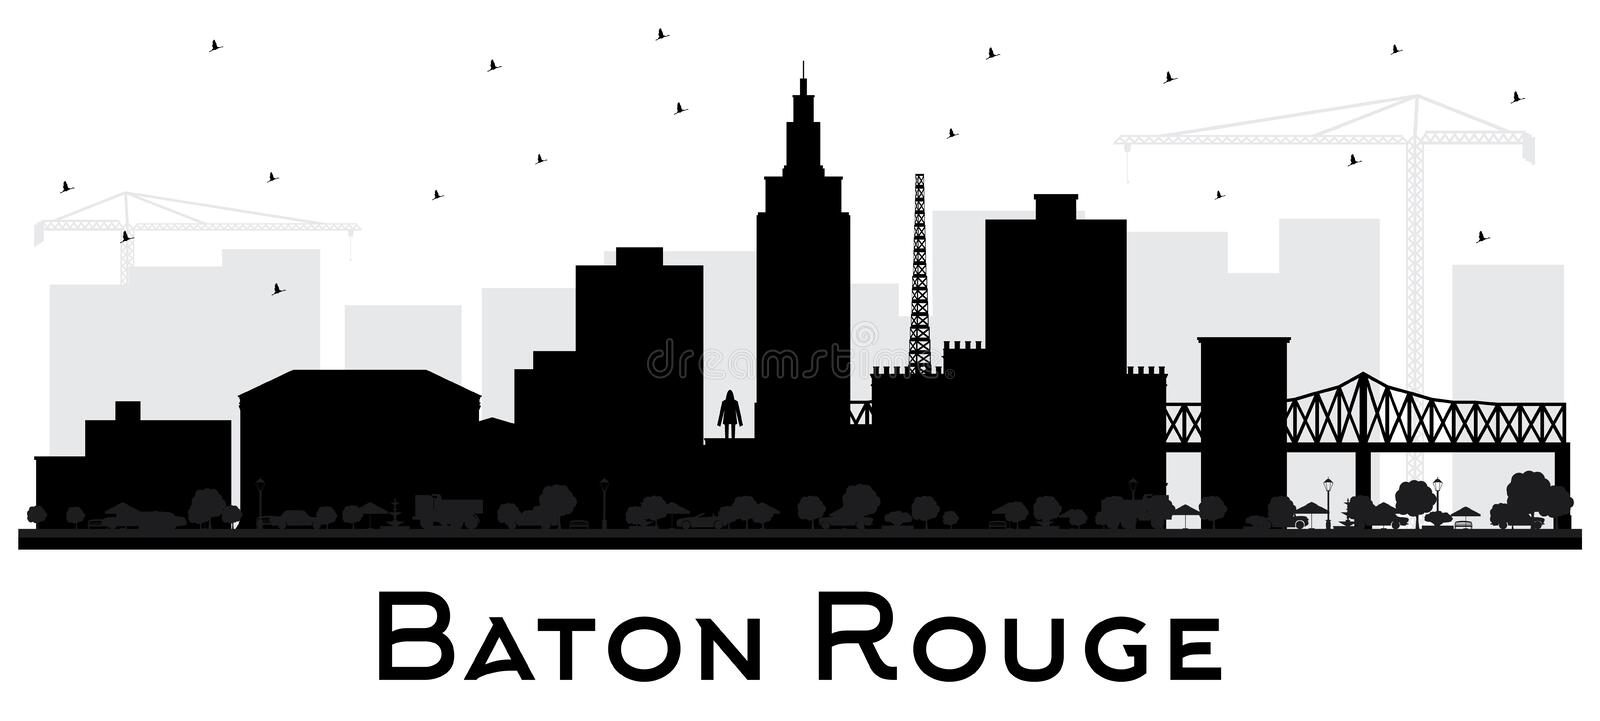 Baton Rouge Louisiana City Skyline Silhouette with Black Buildings Isolated on White. Vector Illustration. Business Travel and Tourism Concept with Modern stock illustration